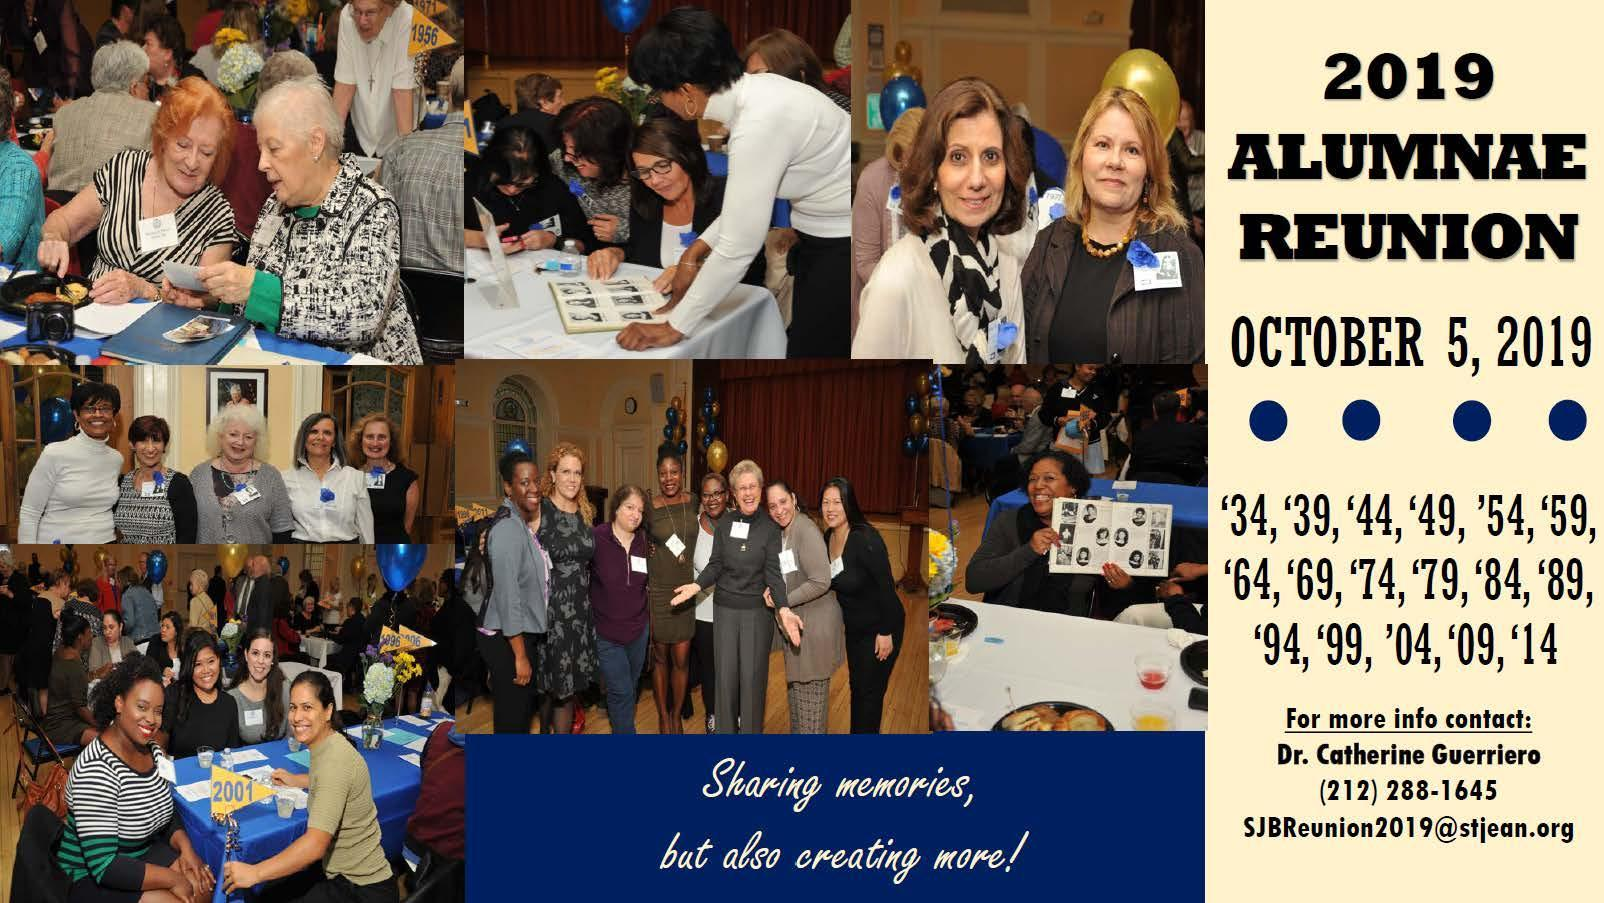 Collage of Jeanite Alumnae. RSVP information reads 'For more information contact Dr. Catherine Guerriero 212-288-1645 sjbreunion2019@stjean.org